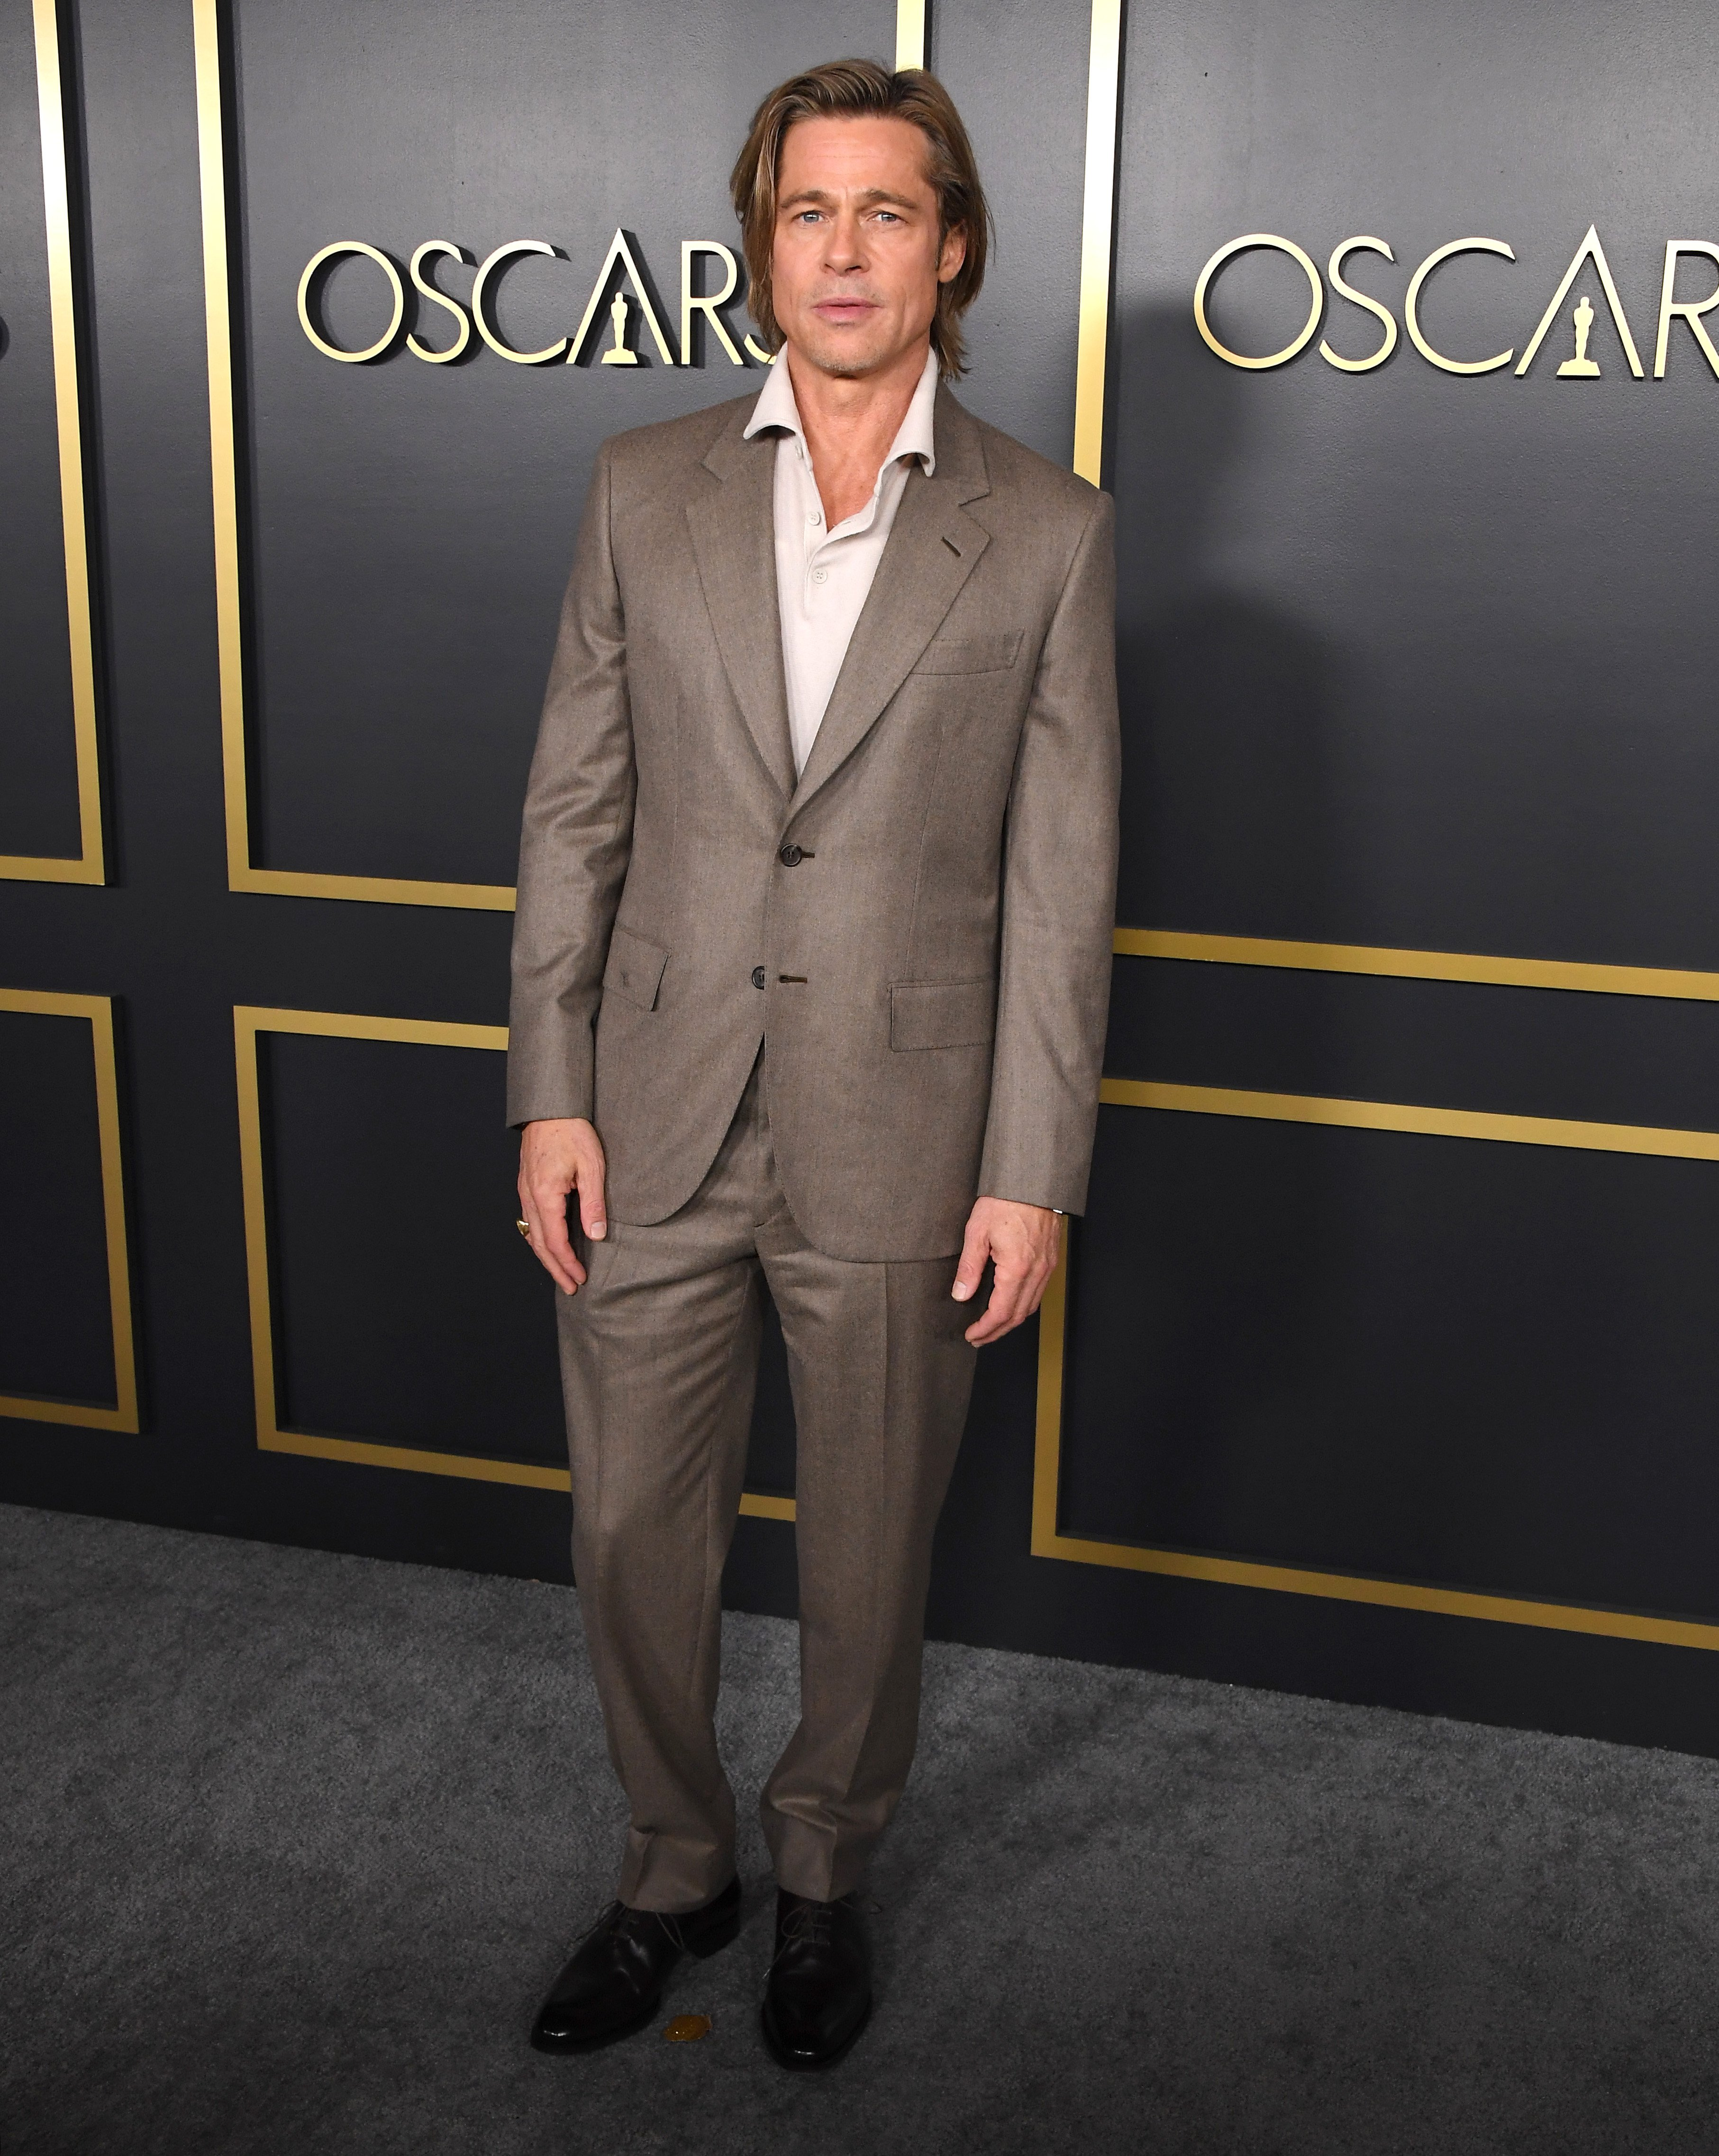 Brad Pitt  at the 92nd Oscars Nominees Luncheon in Hollywood, California   Photo: Steve Granitz/WireImage via Getty Images